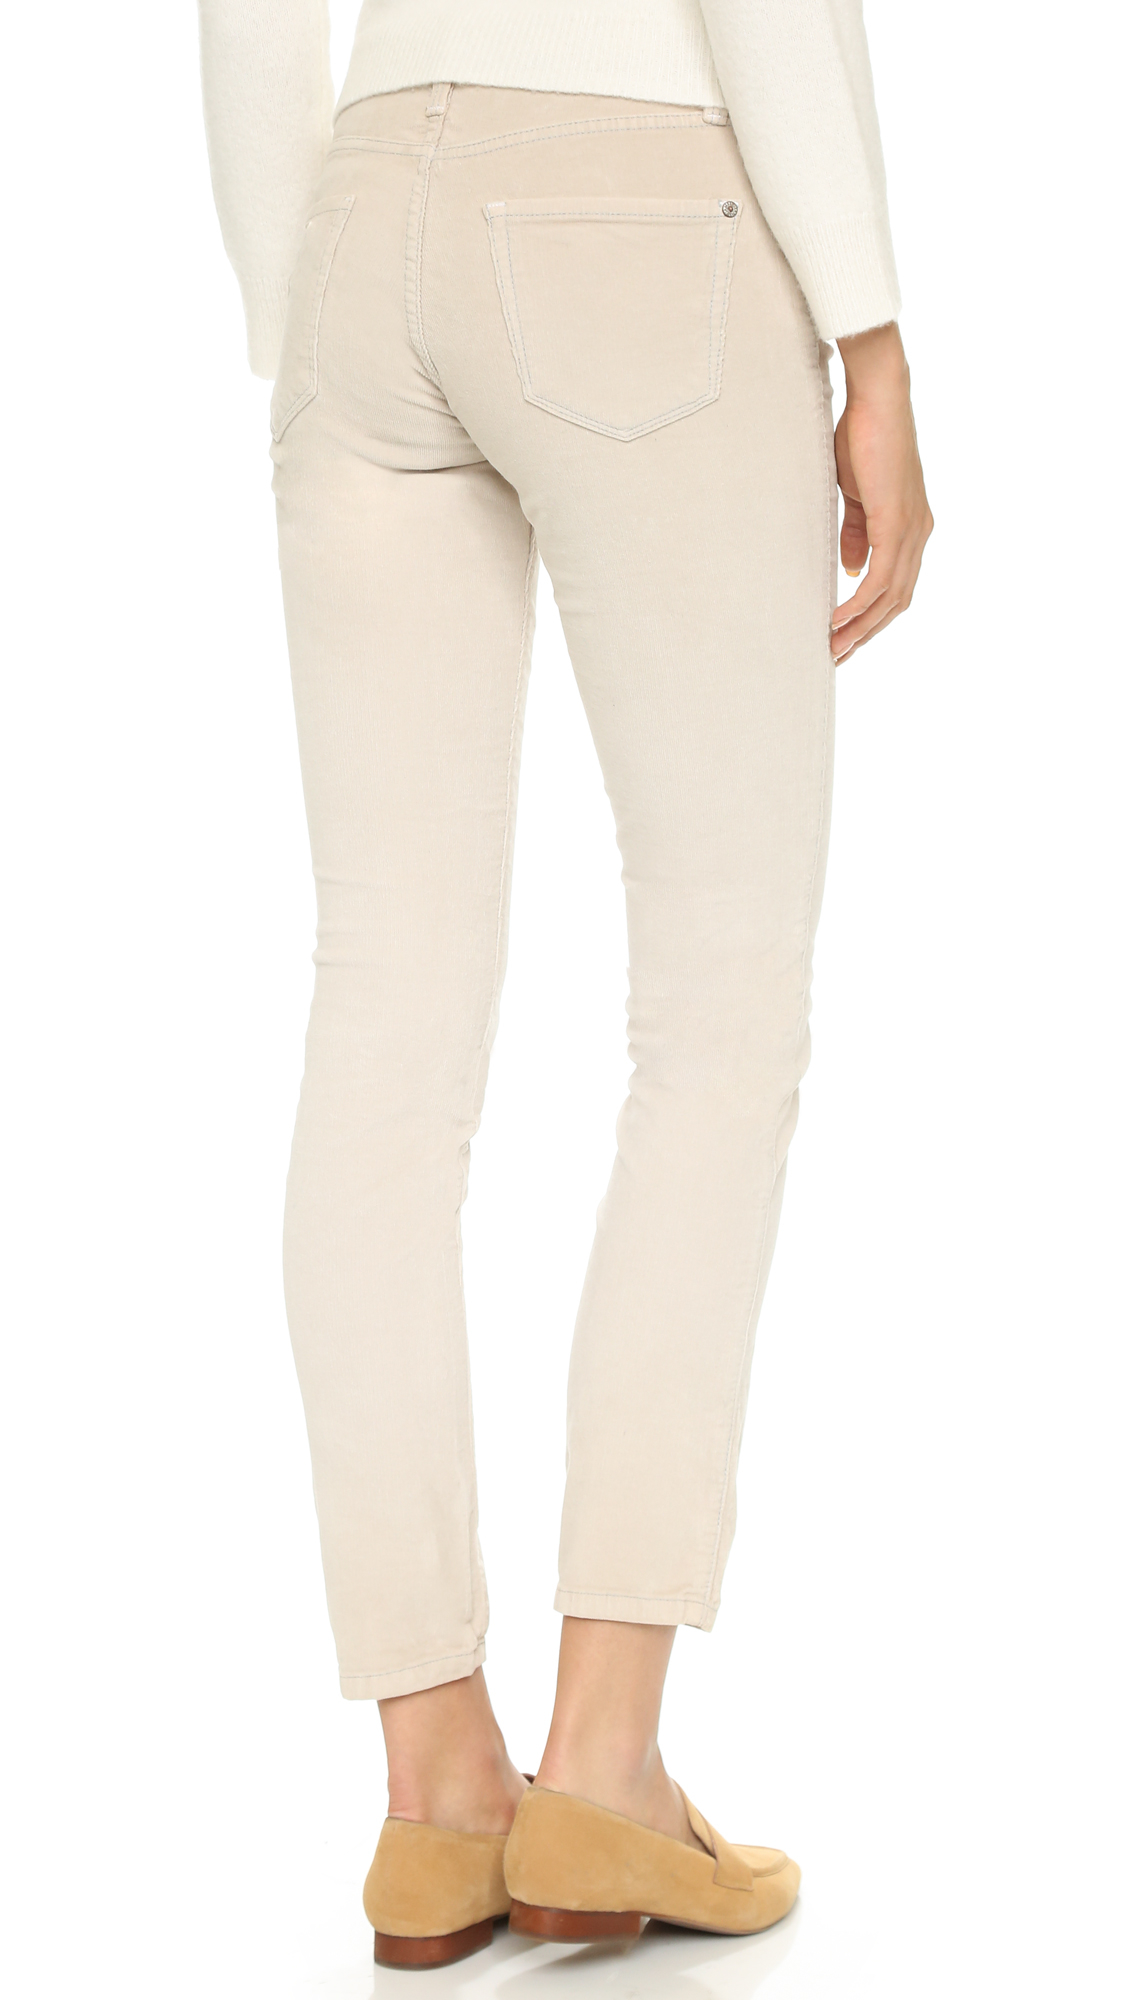 Redefine casual work days with corduroy pants for women. Corduroy pants and button-down shirts are crisp yet relaxed, while dress shirts and corduroy pants are ready for daily office meetings. Set the scene for comfortable business travels with corduroy pants and flats or sandals.